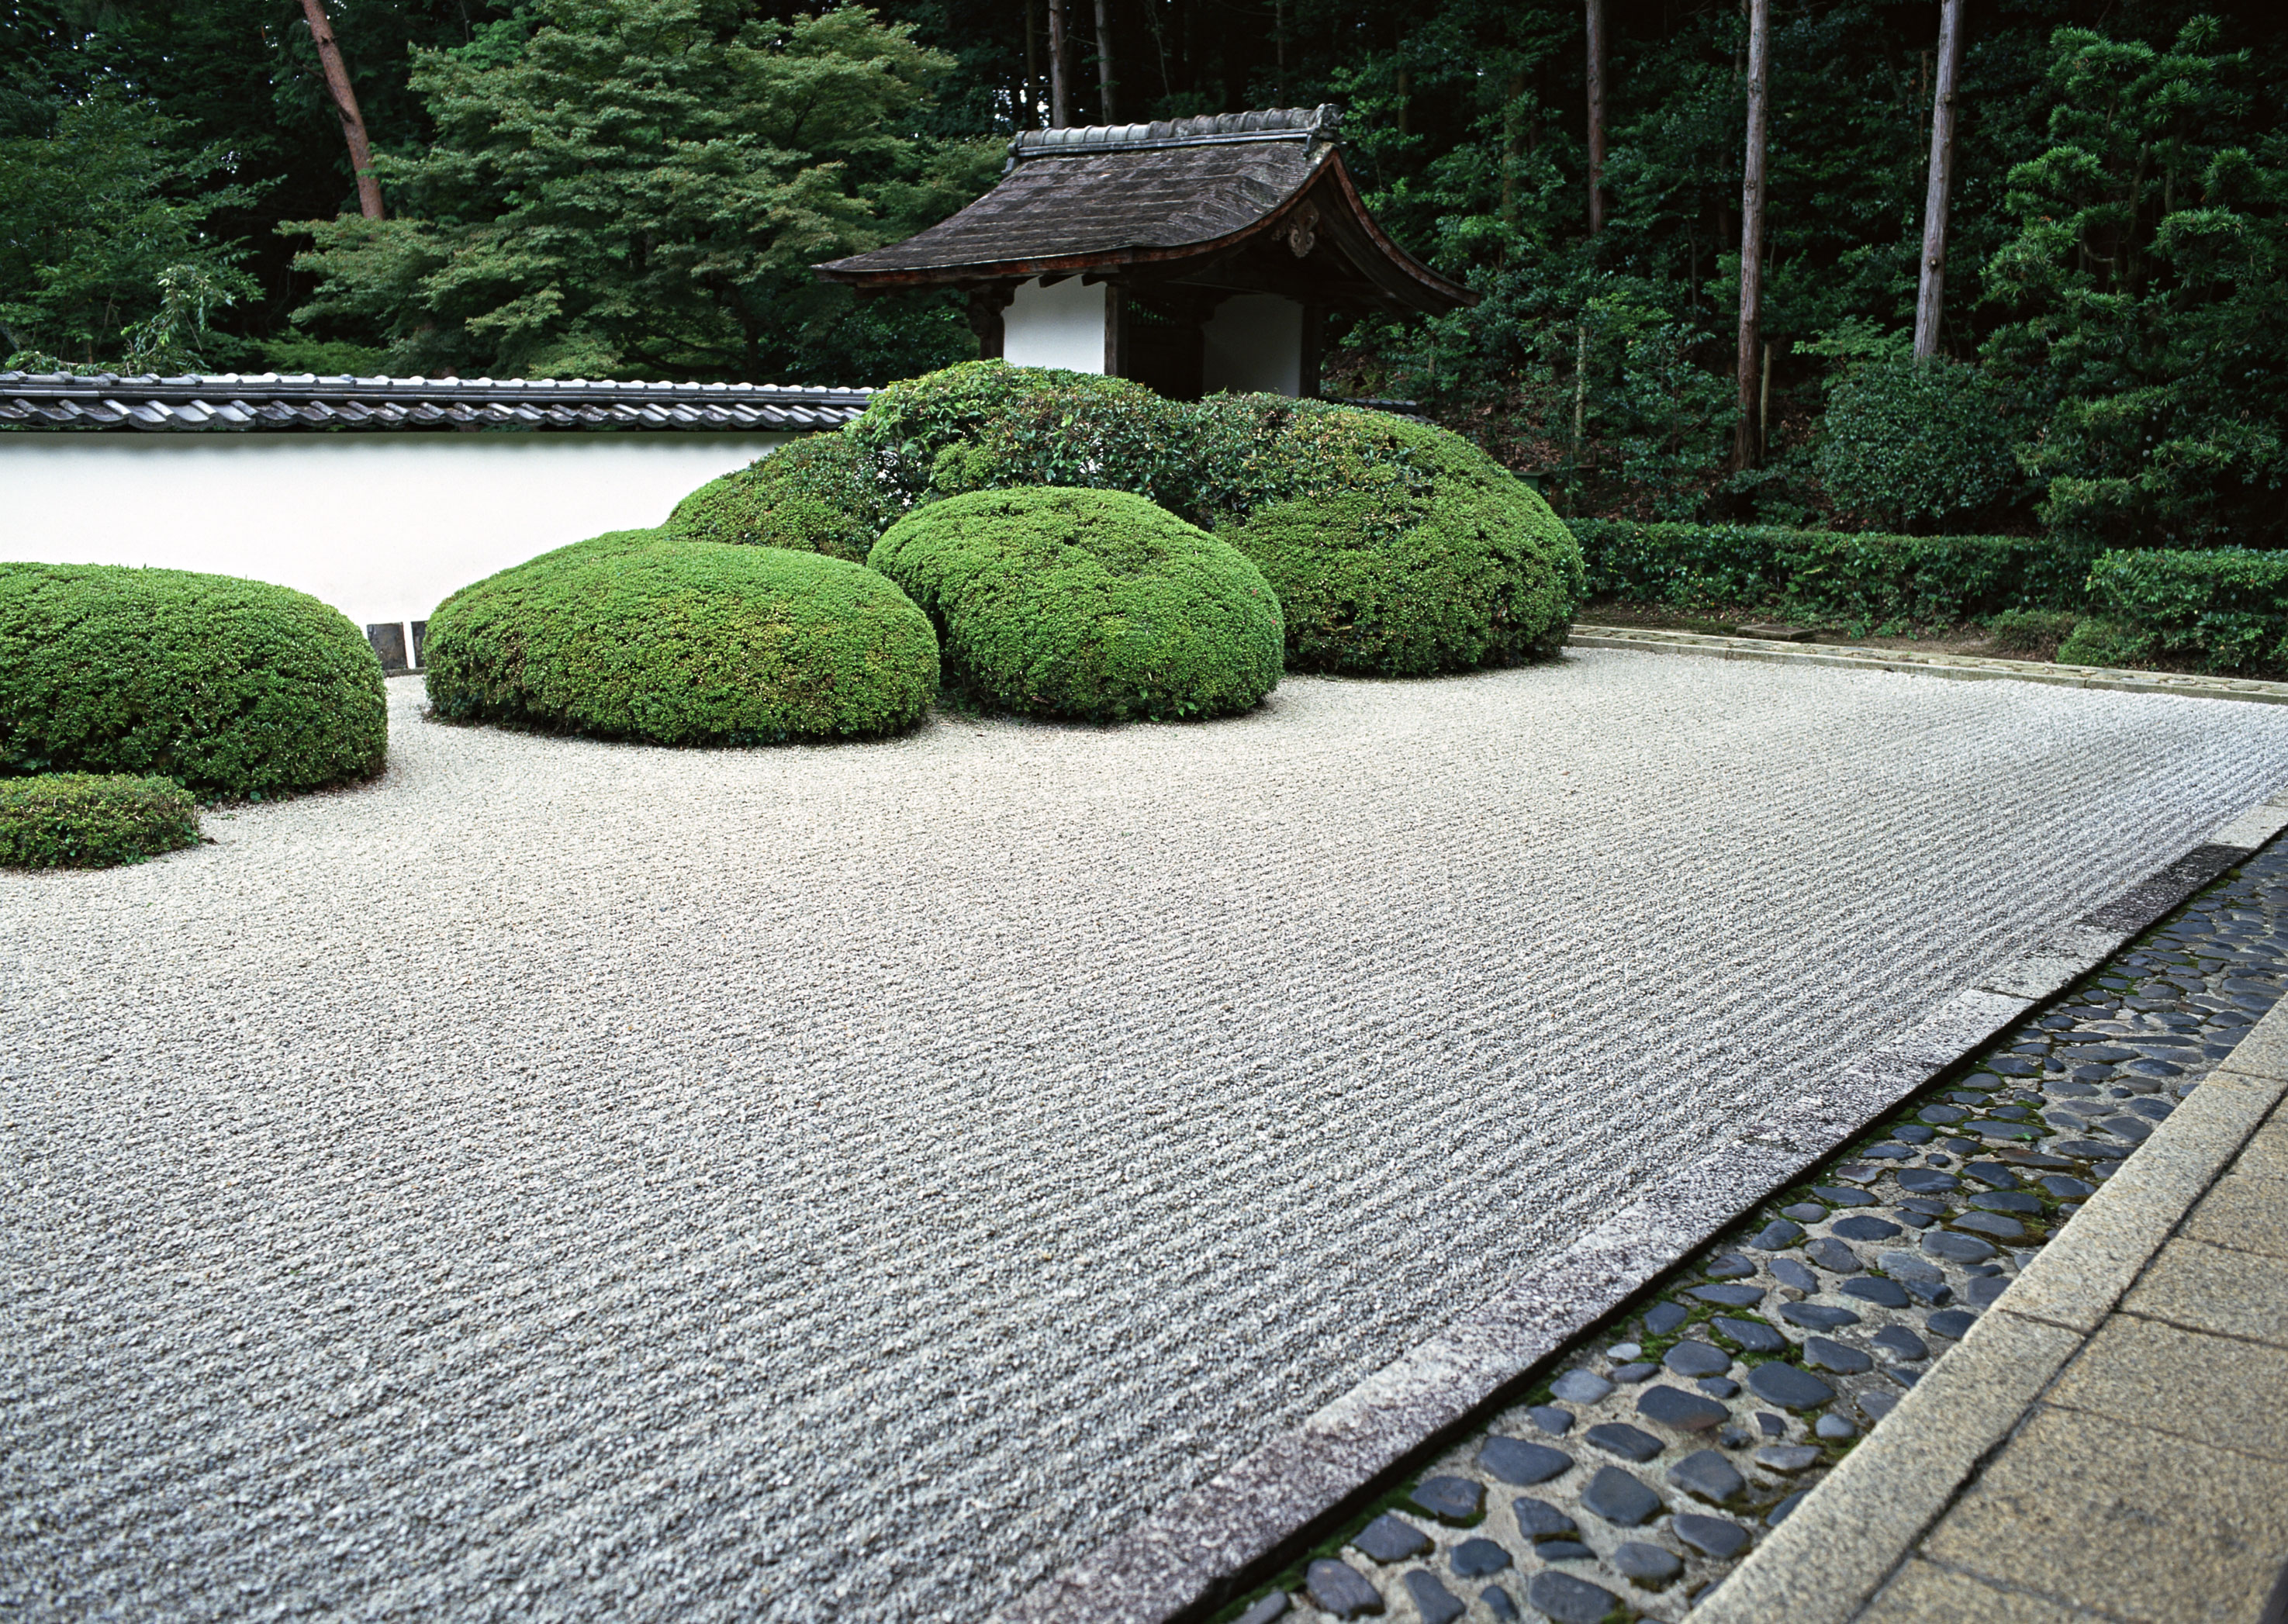 Why do we love japanese garden design it 39 s all about the for Japanese garden architecture